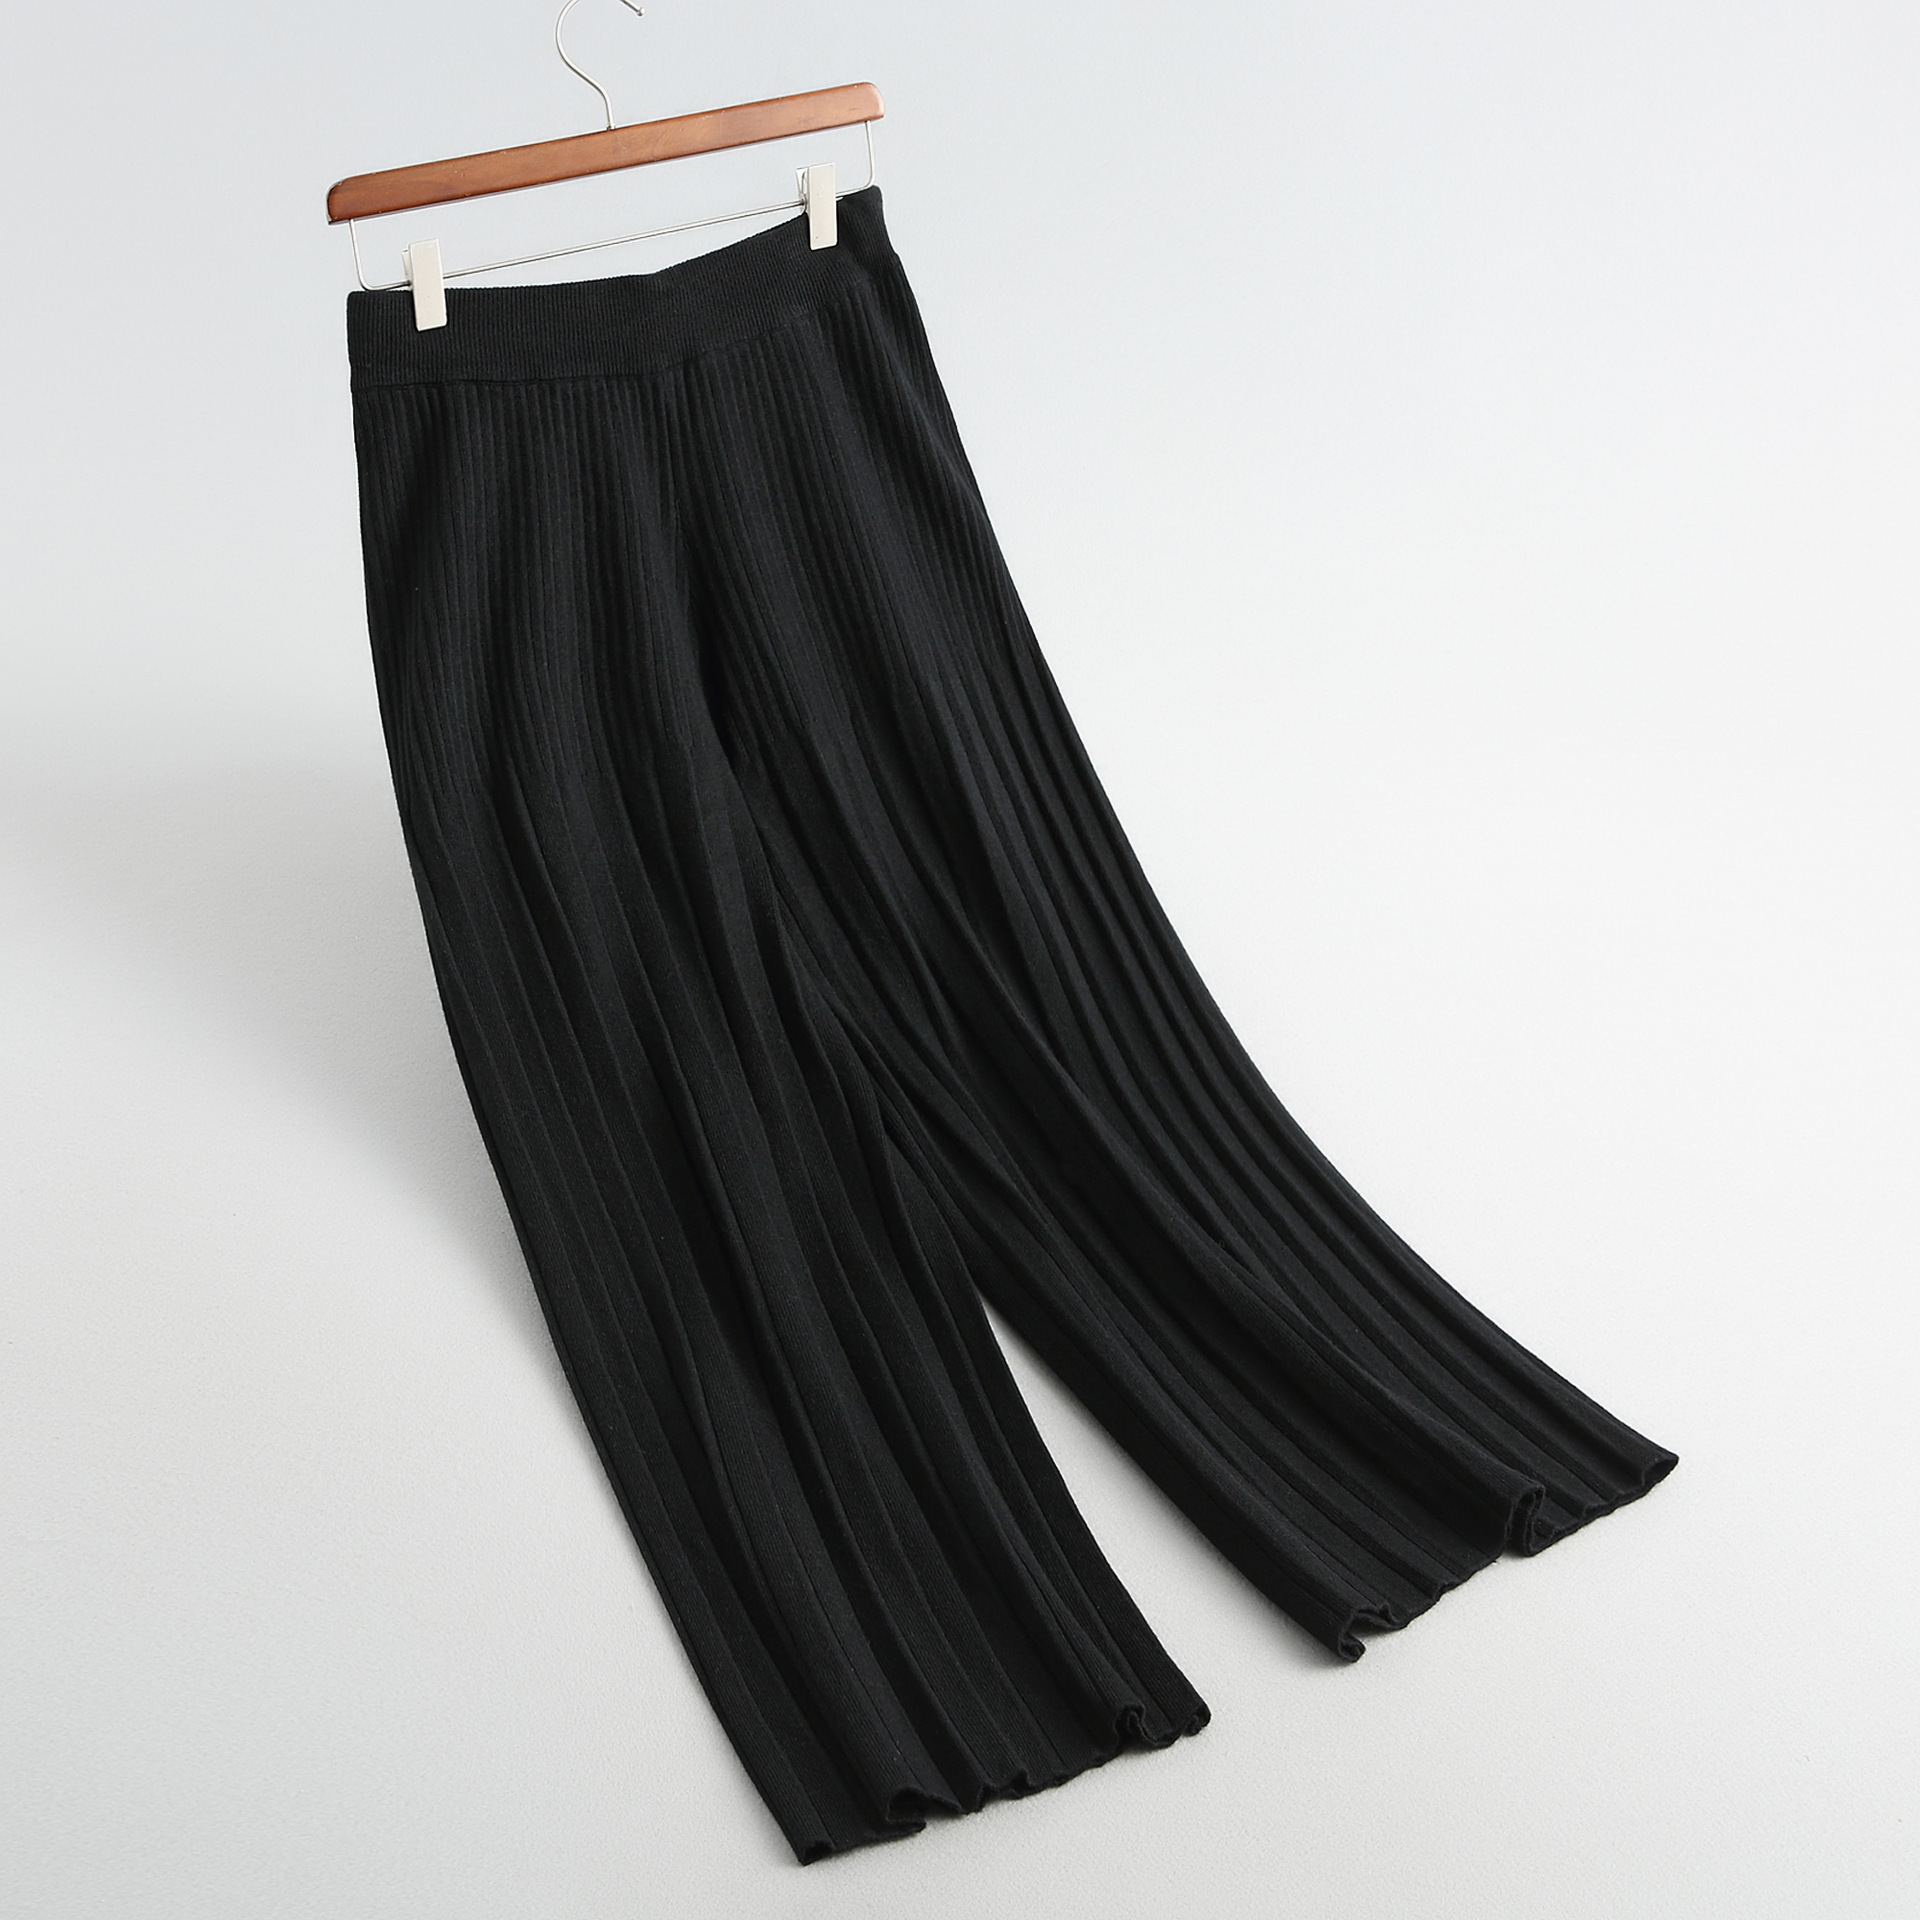 black Good Legged Thin Tall Beige coral Waist Pants gray 2018 Winter Pant Legs Wide Knitting Pleated yellow Show New Feeling Red 8xqPFaq